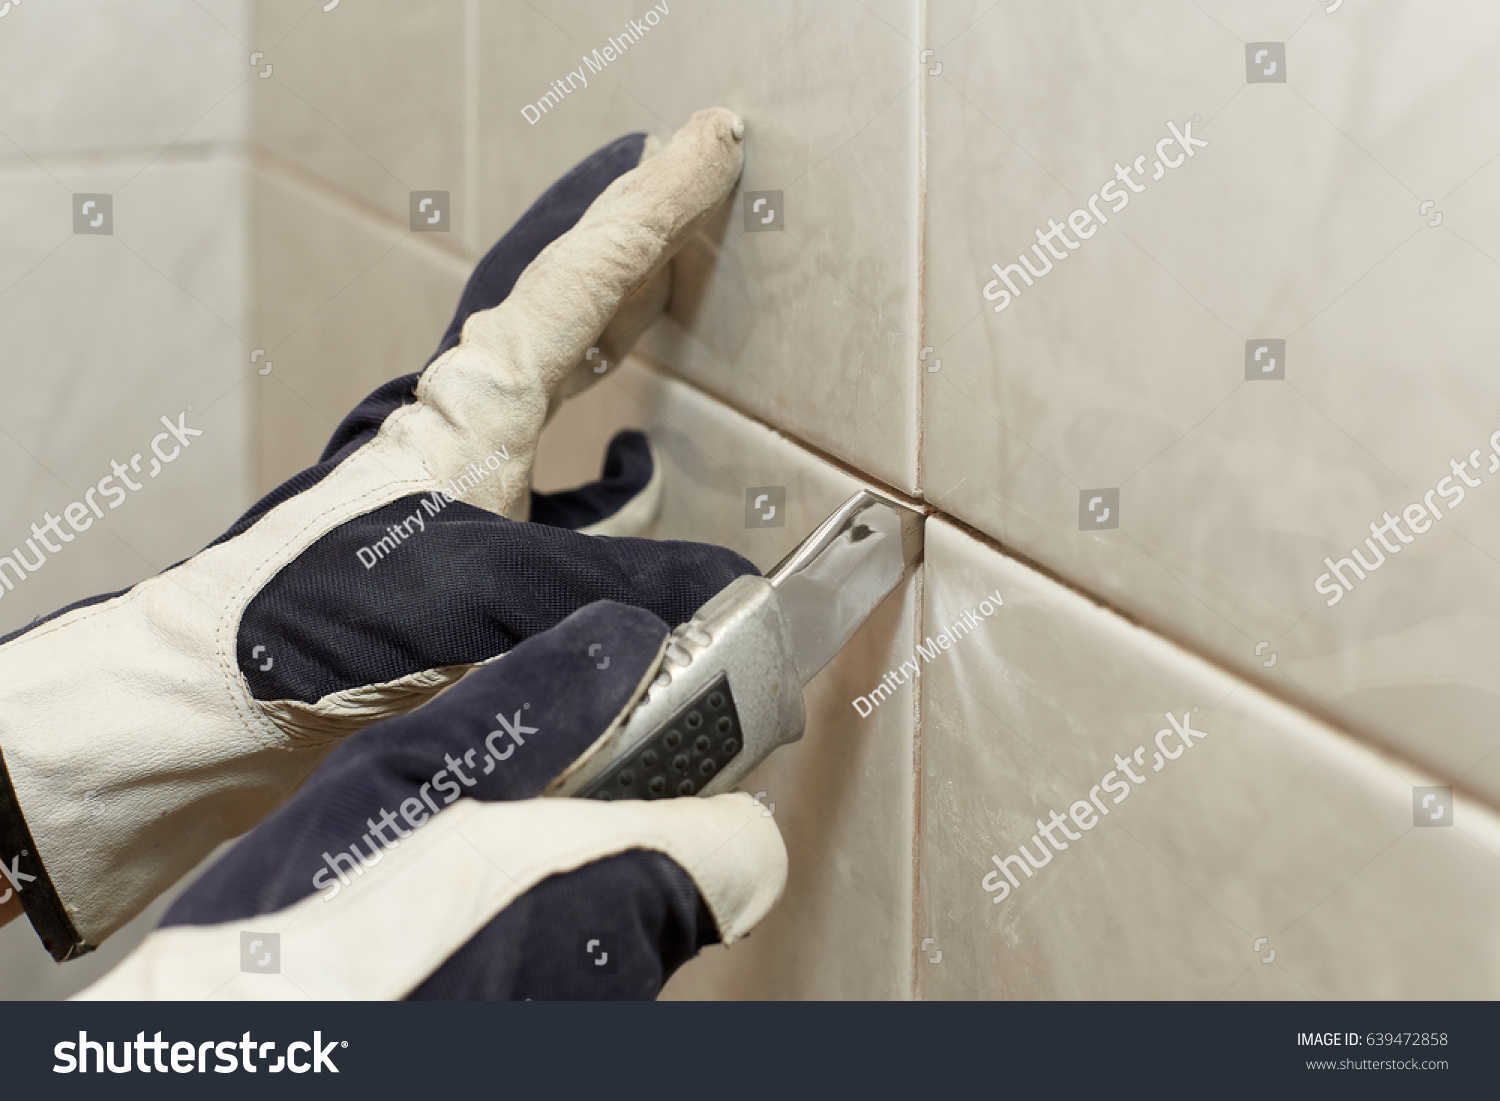 How to remove old grout from tile floor images home flooring design best how to remove old grout from floor tiles images flooring removing old grout from floor doublecrazyfo Images